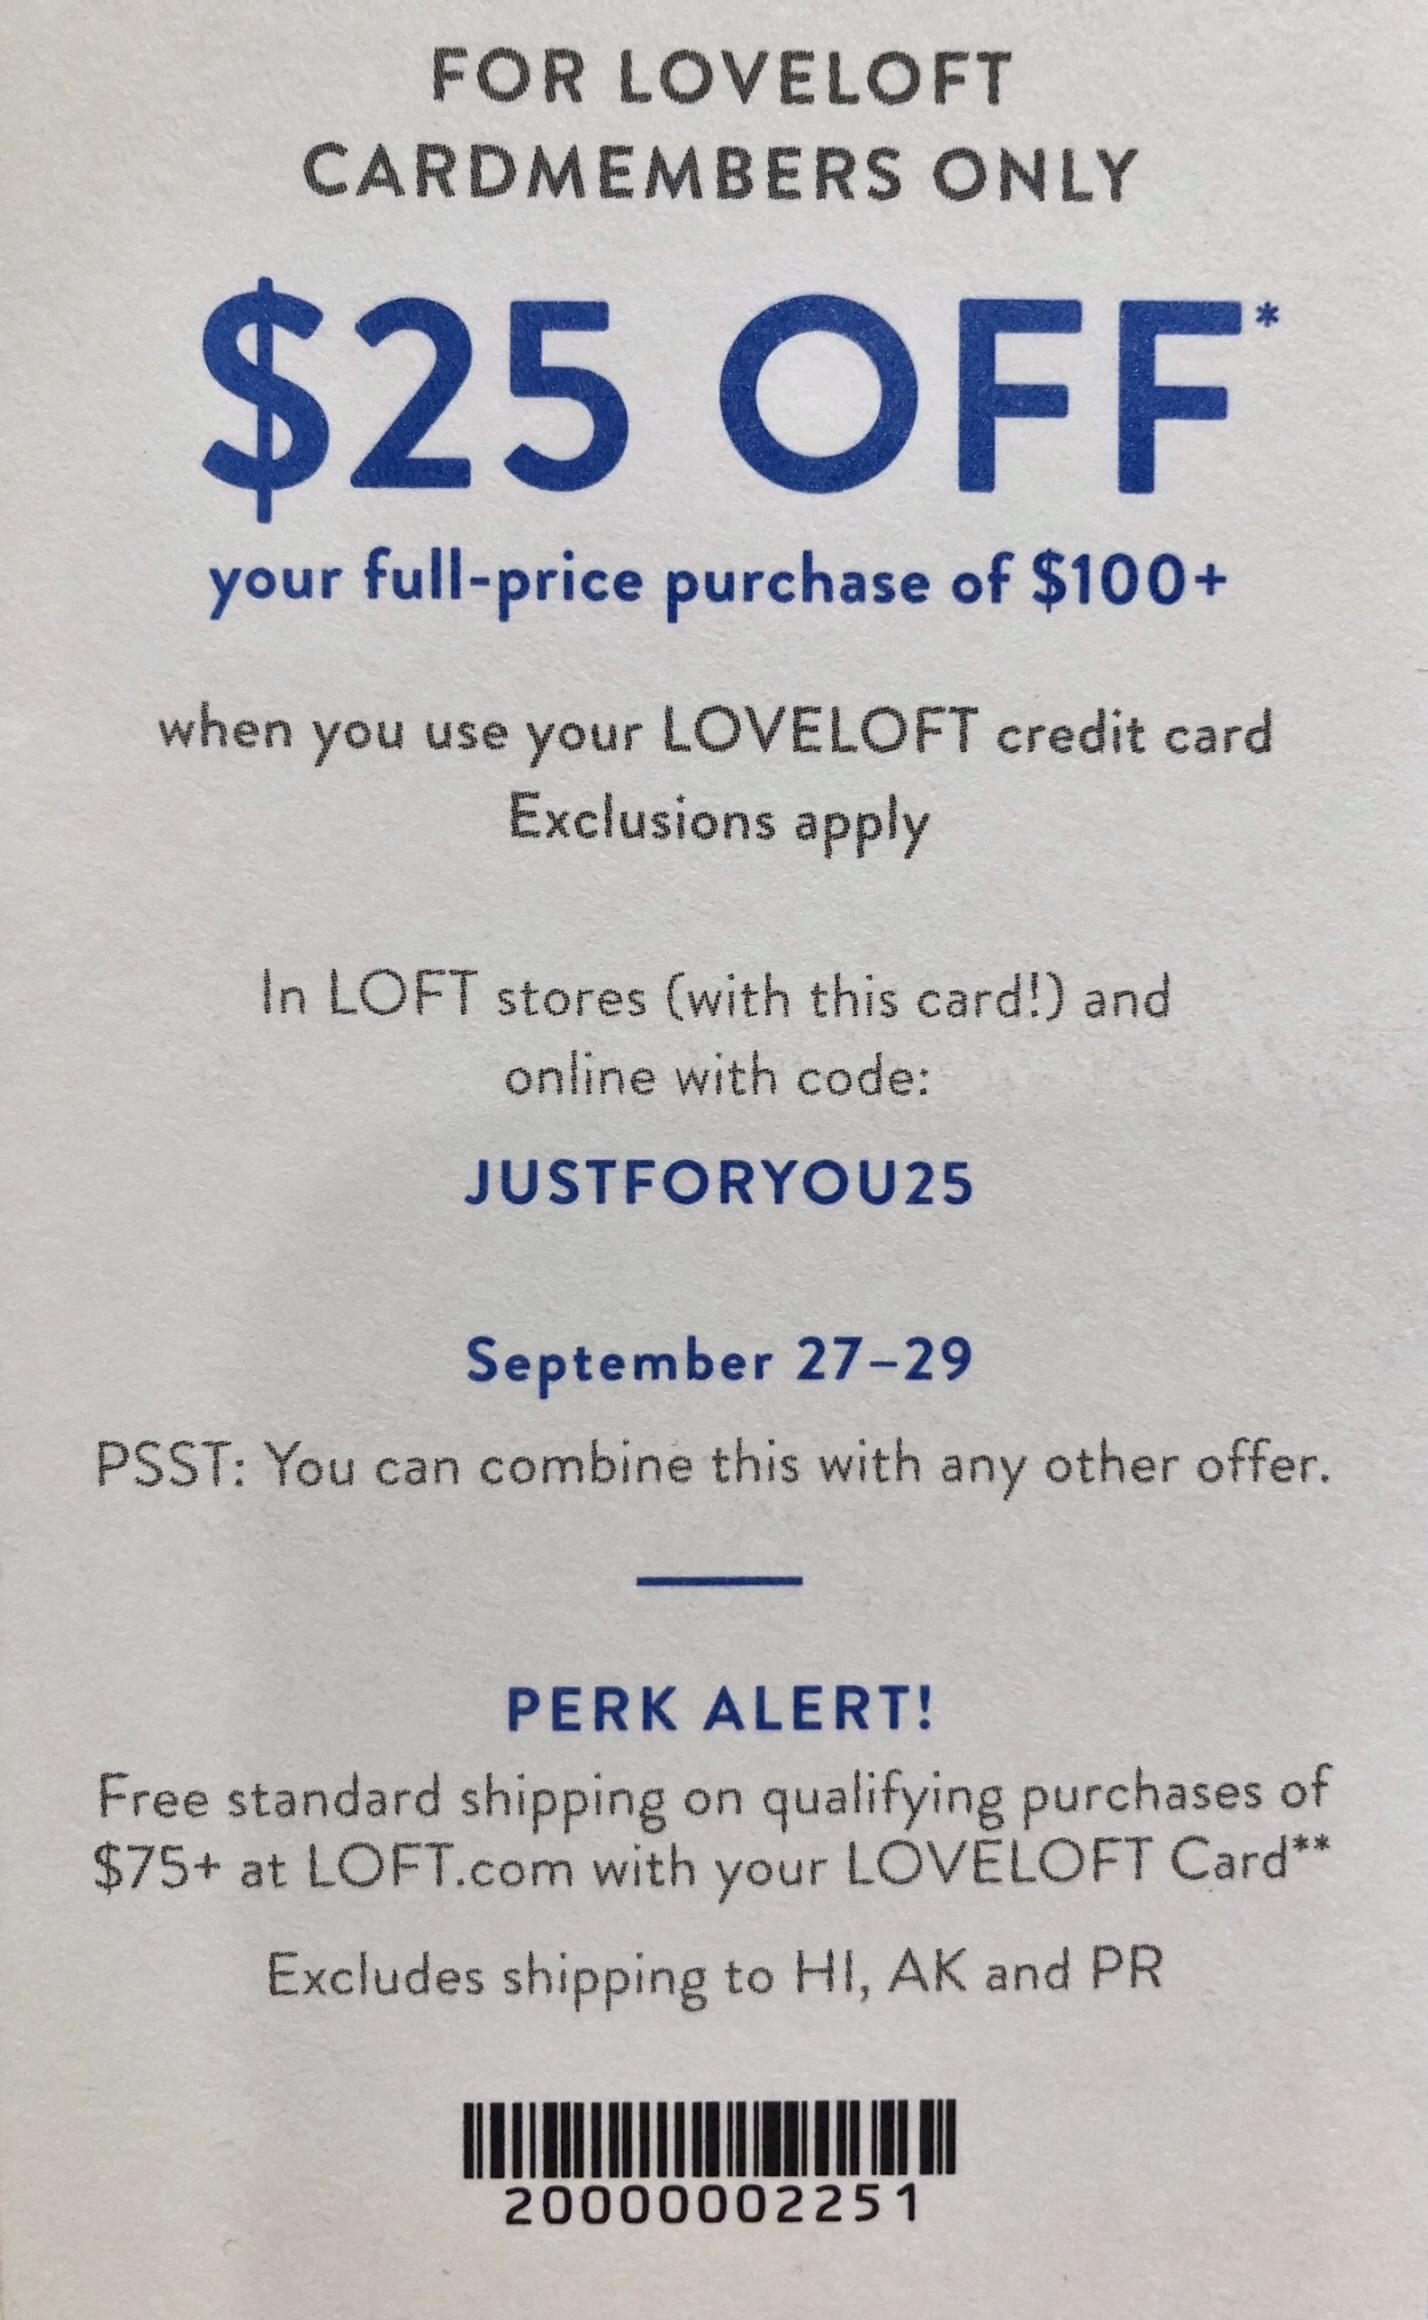 JUSTFORYOU25 LOVELOFT Cardmember Code